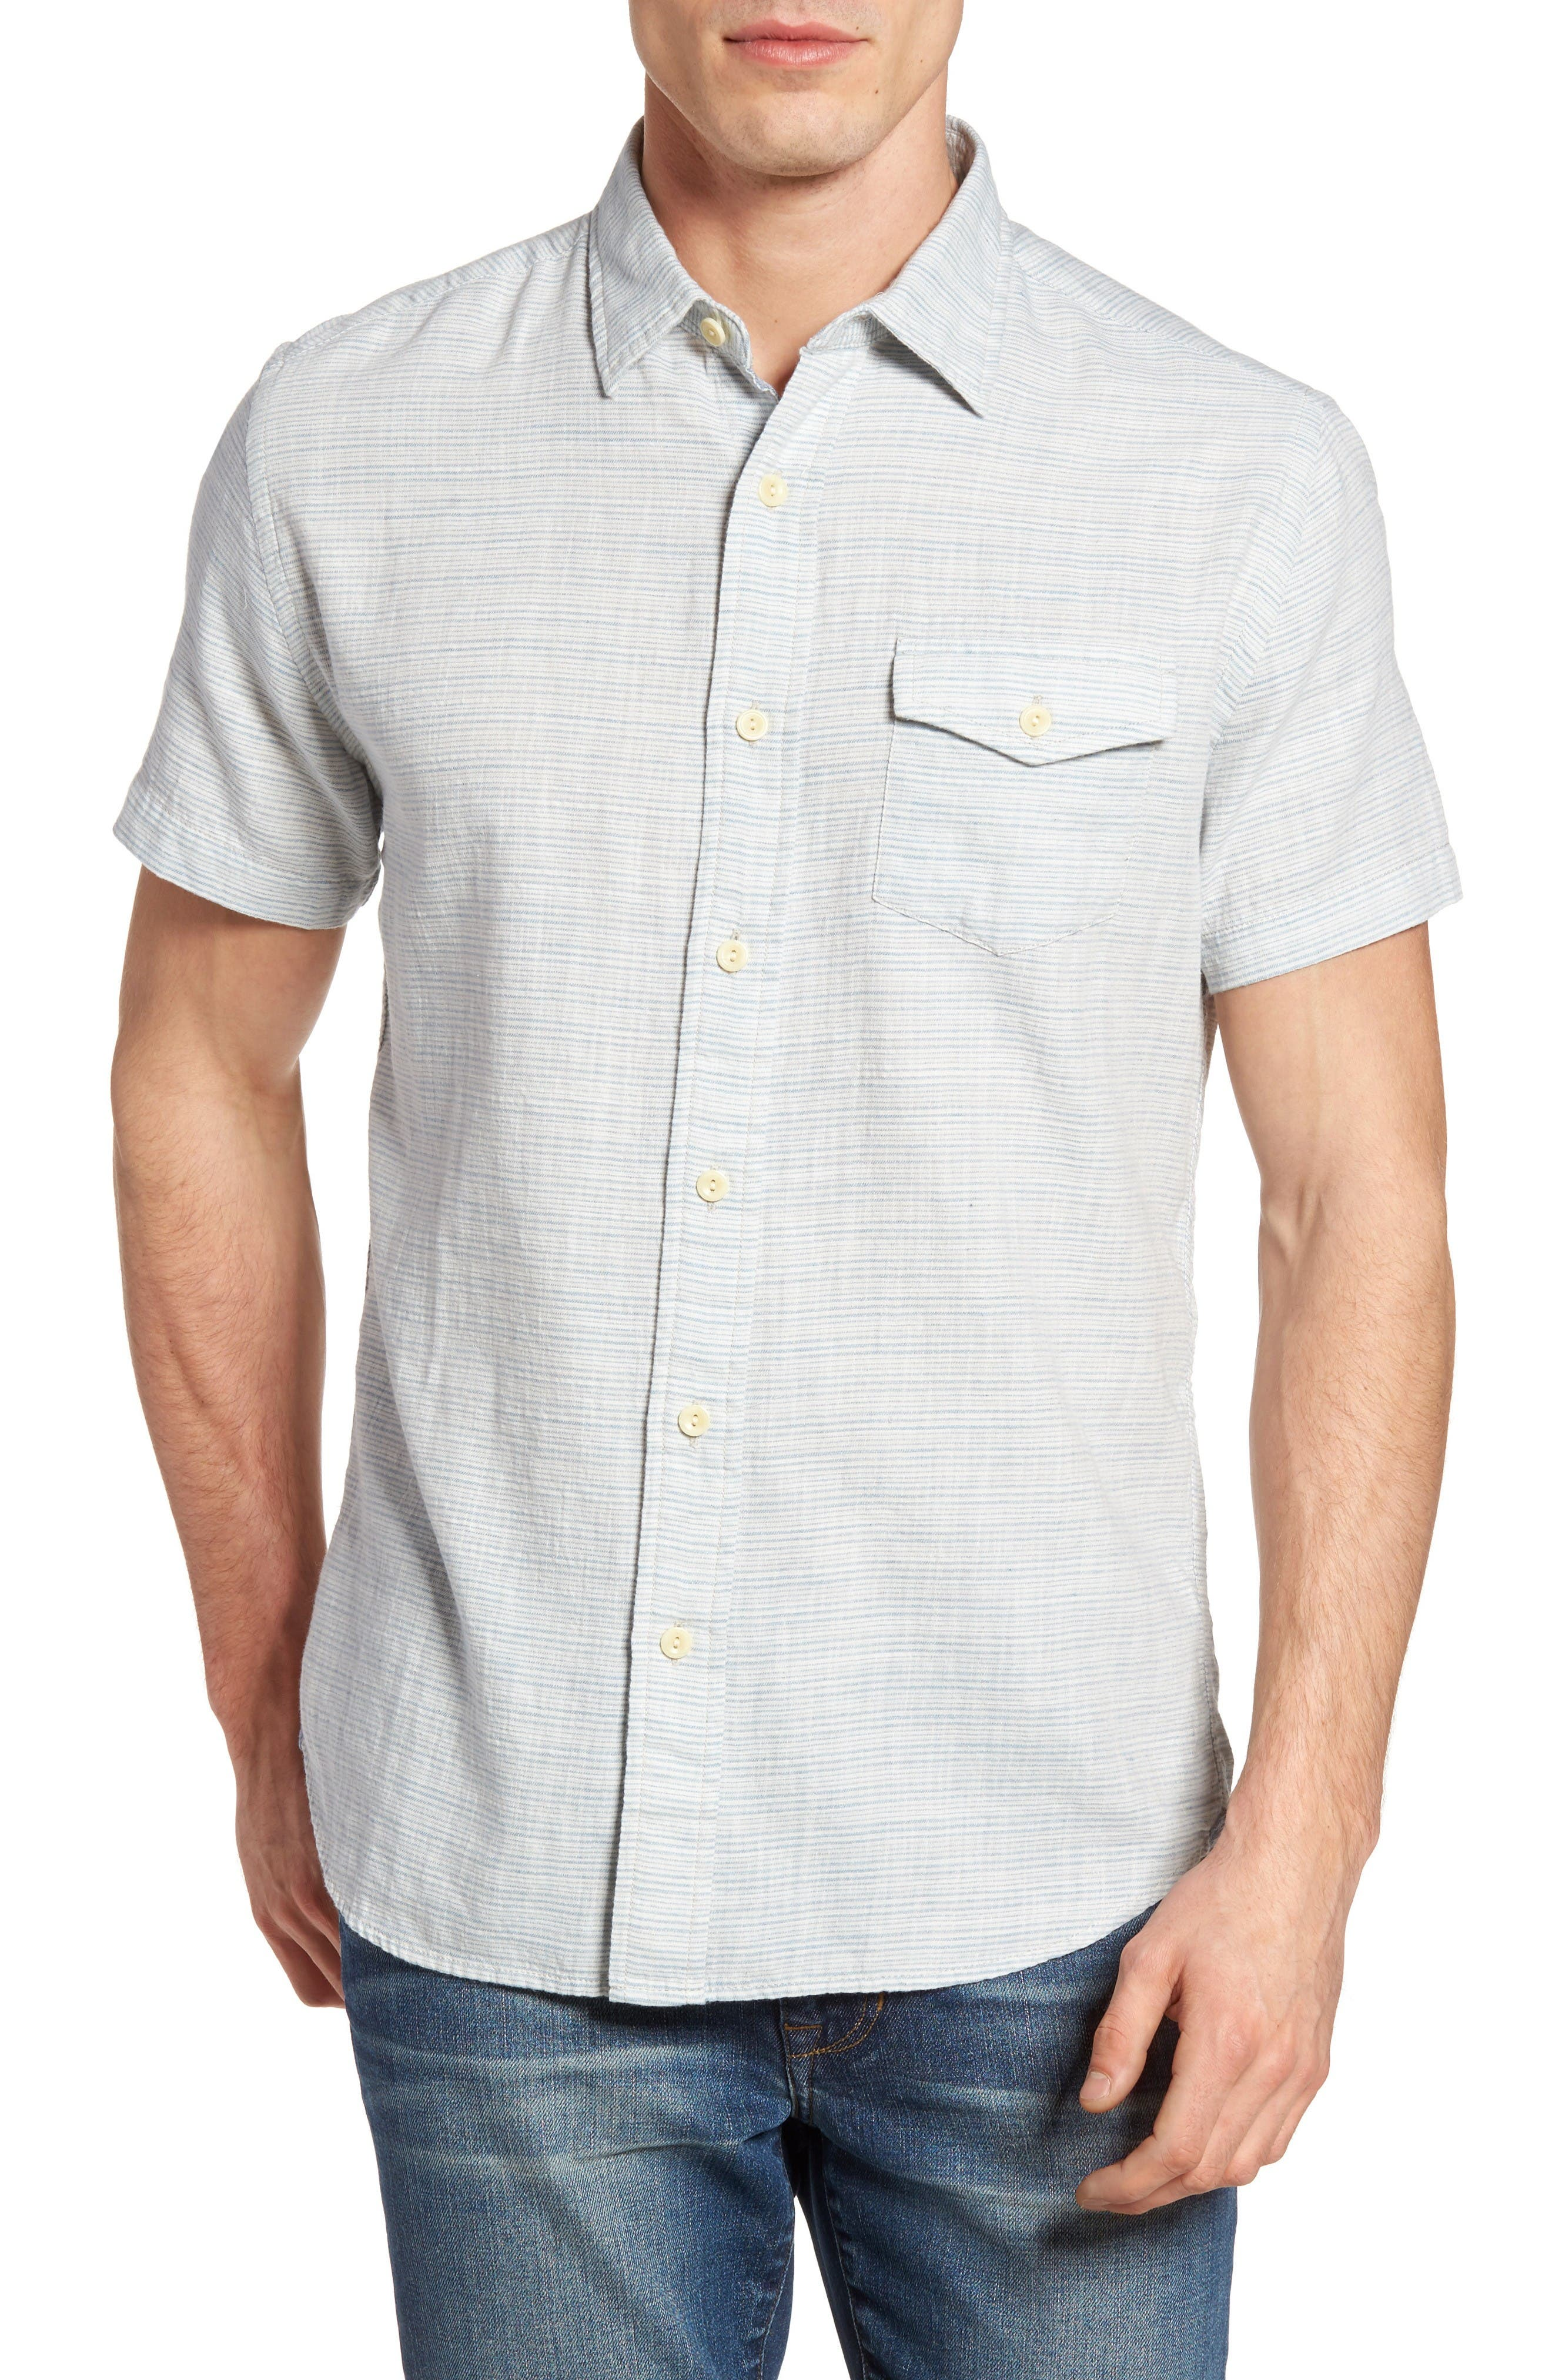 Grayers Horizon Stripe Sport Shirt